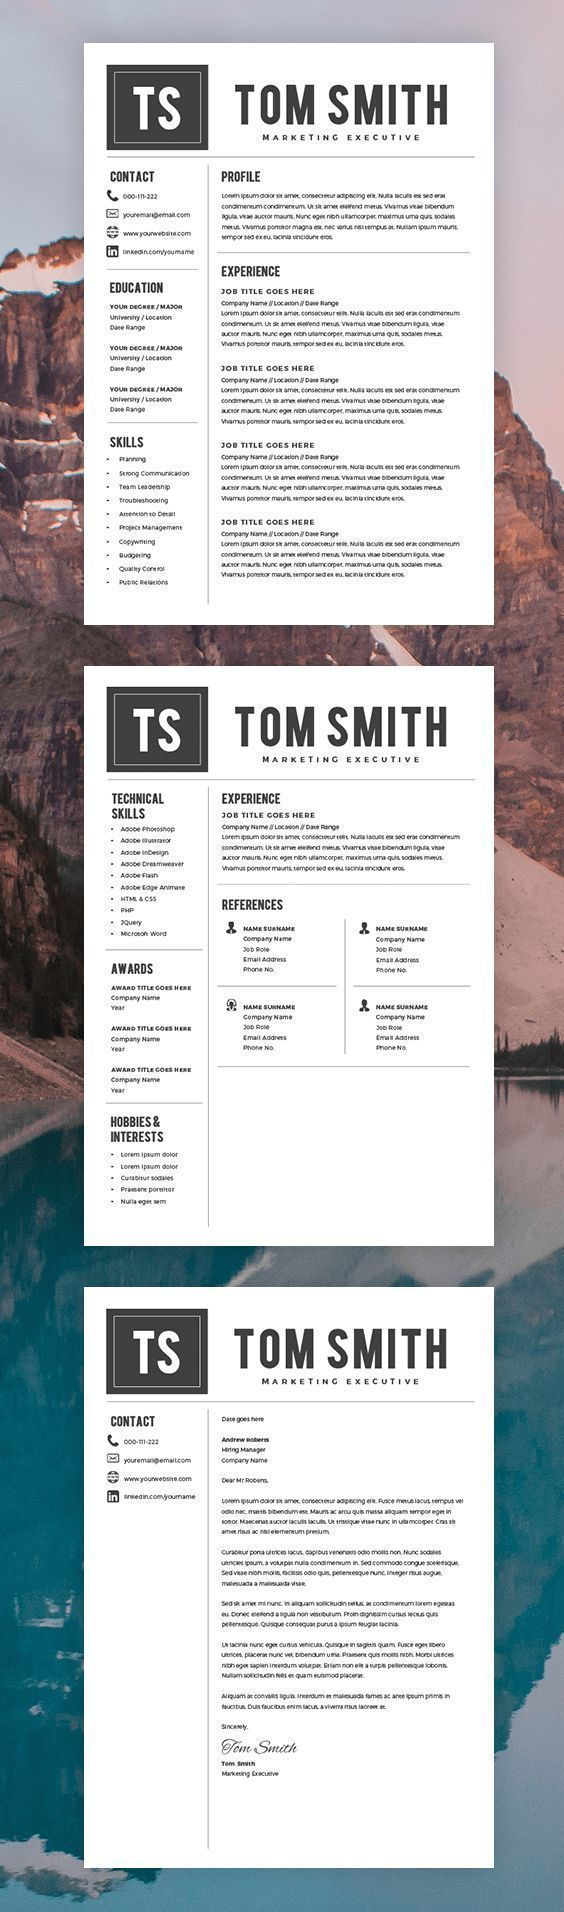 sample resignation letter 1 month notice%0A Modern Resume Template  Free Cover Letter  CV Template  MS Word on Mac